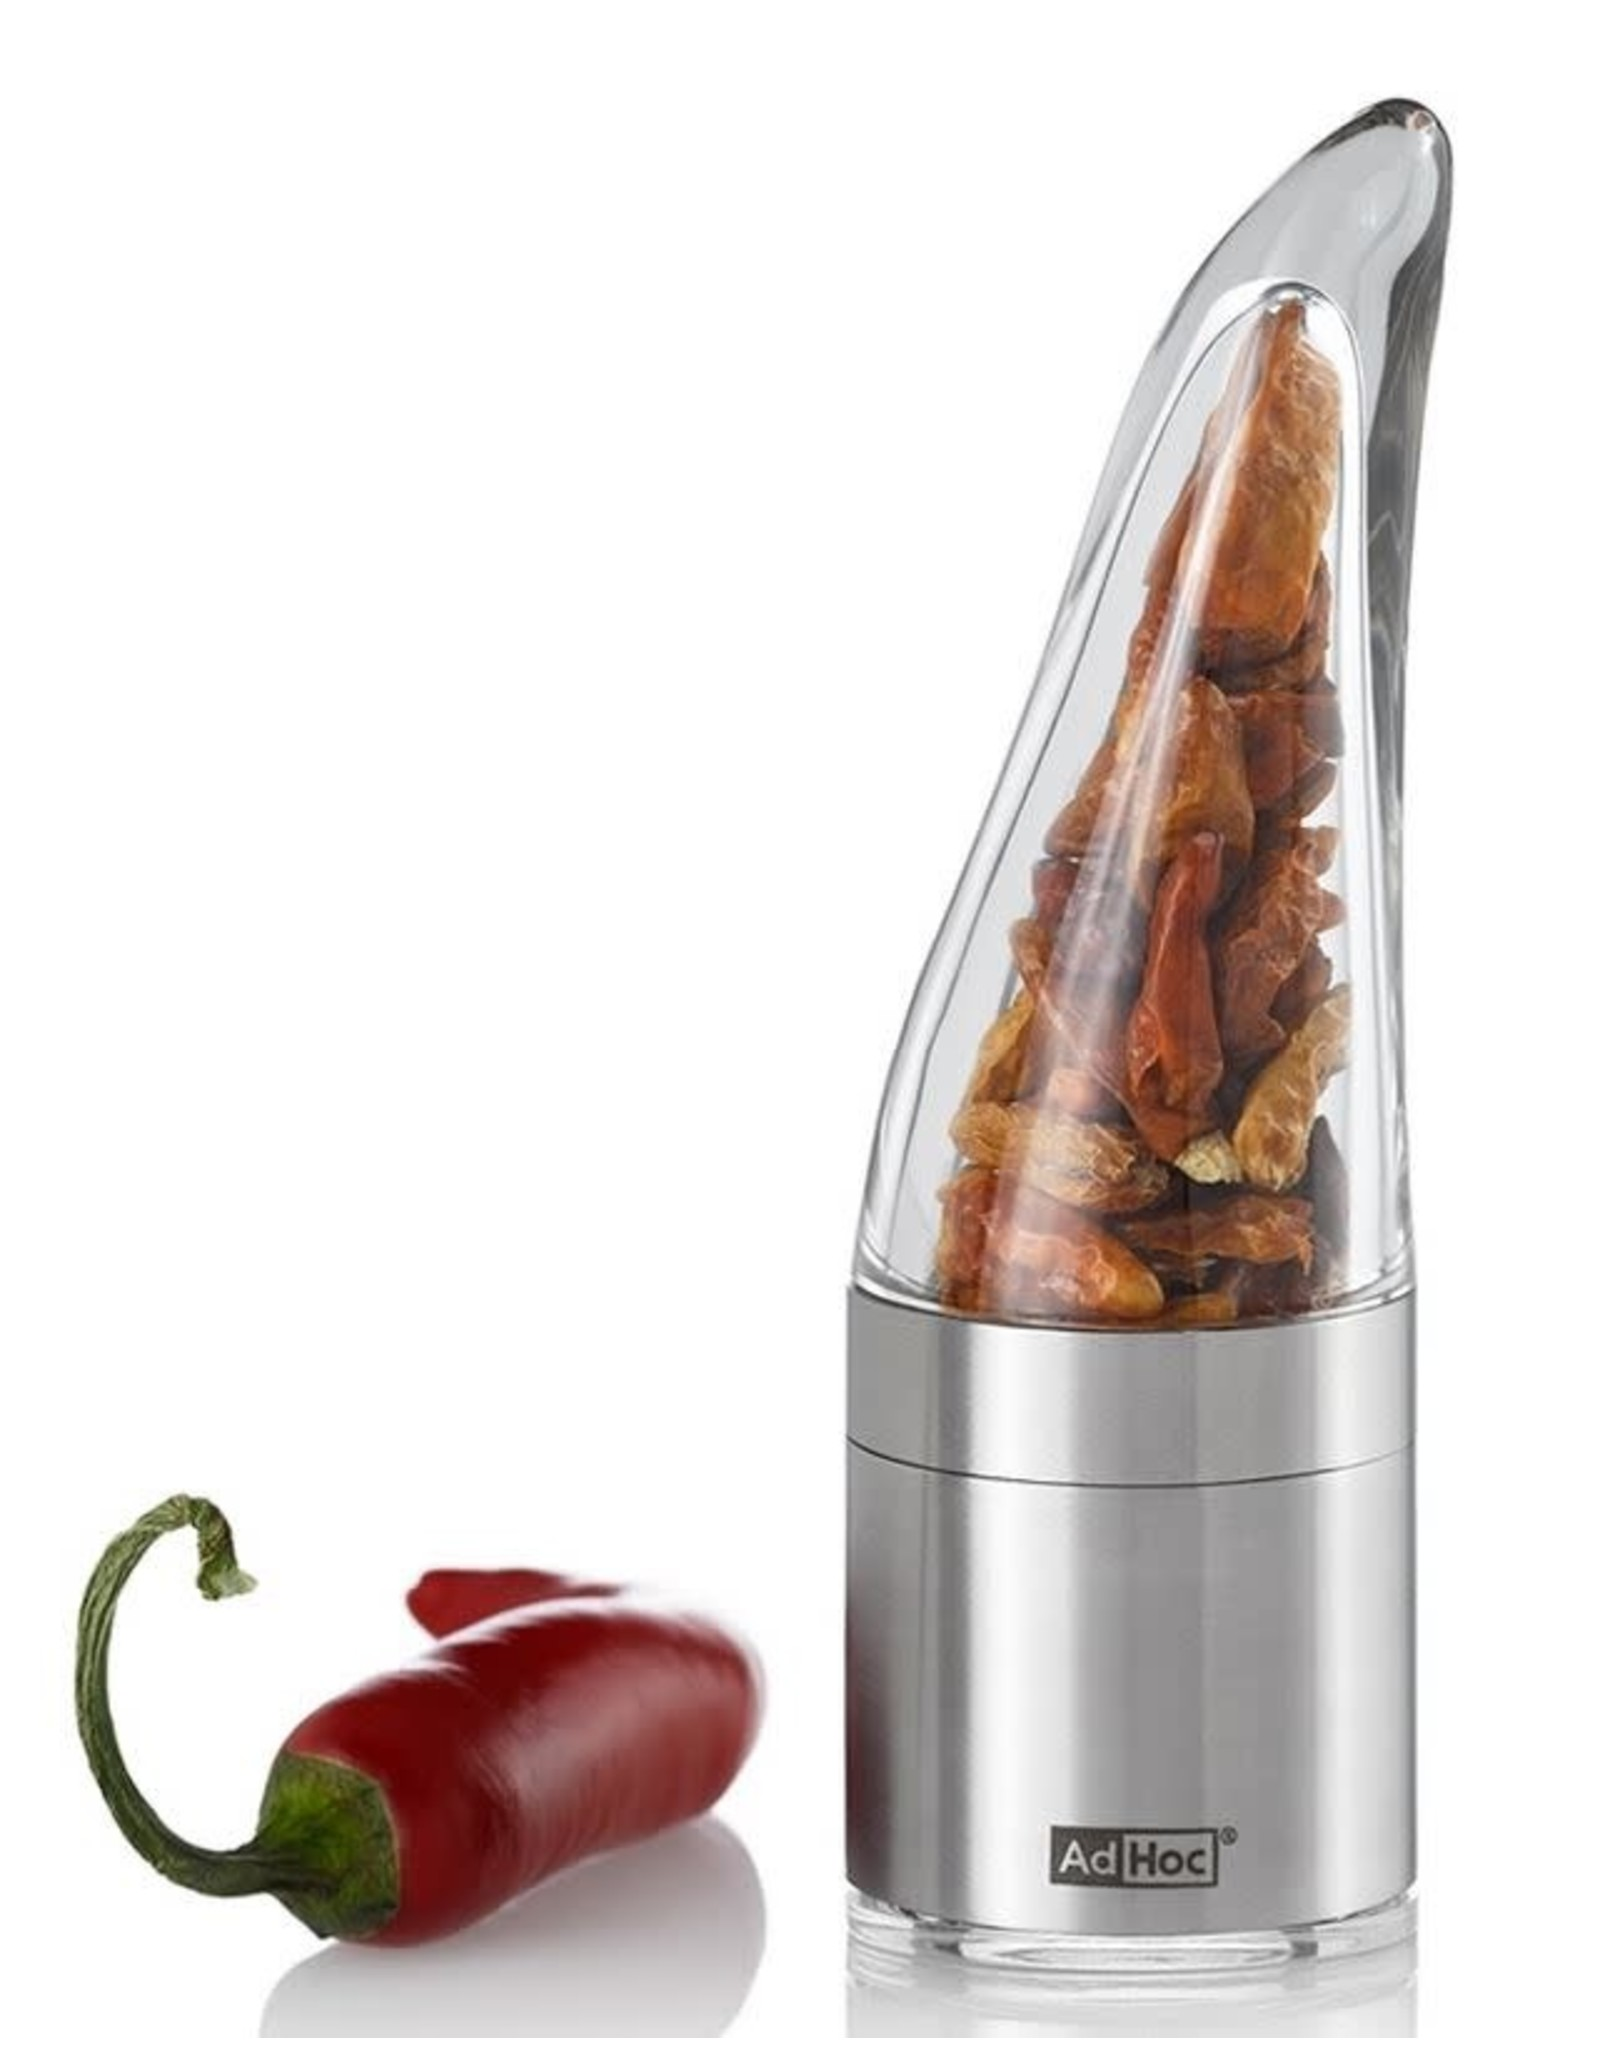 Ad Hoc Pepino Mini Chilli Mill